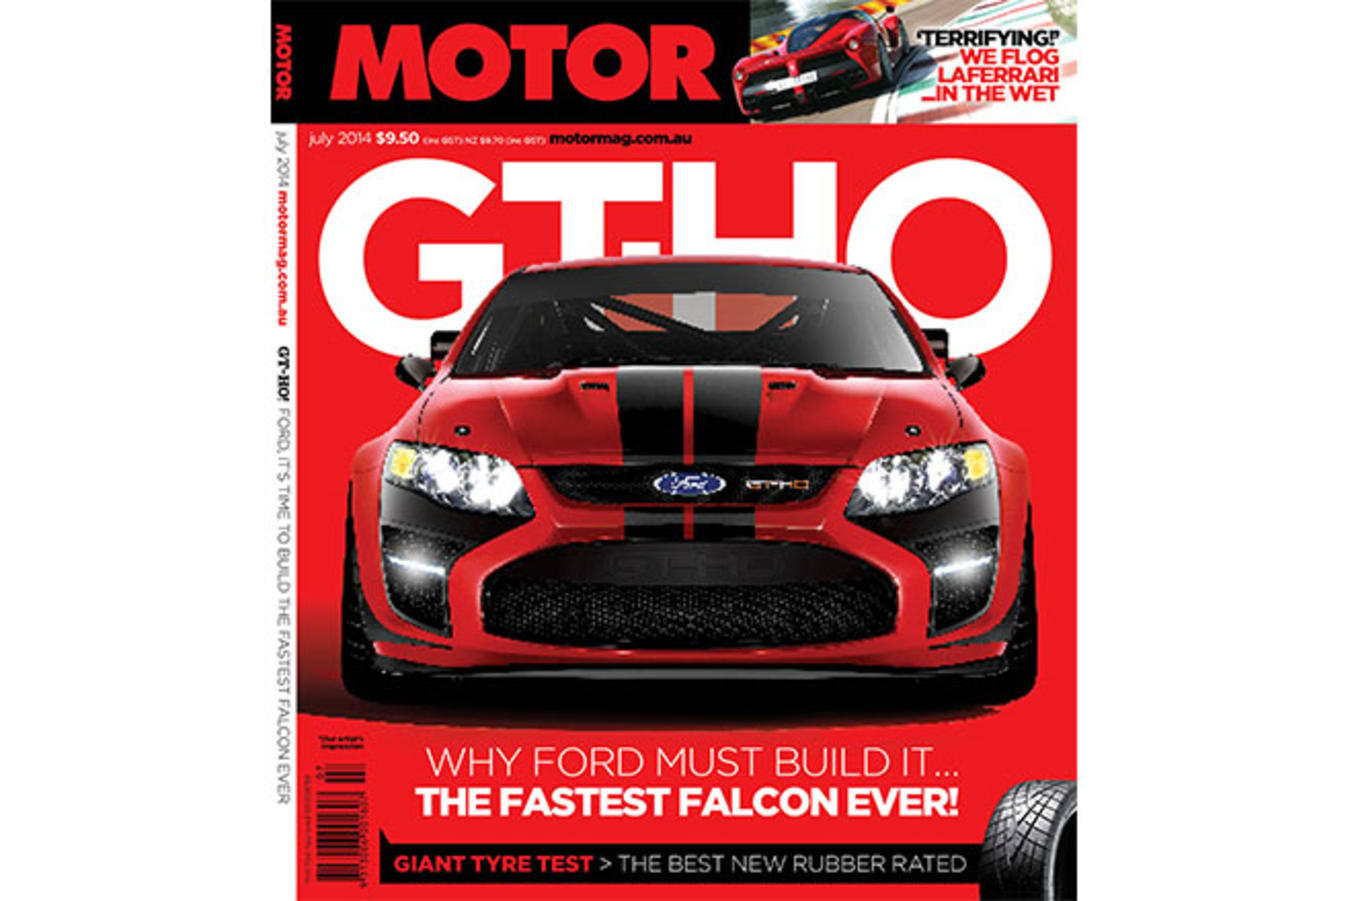 MOTOR July 2014 cover